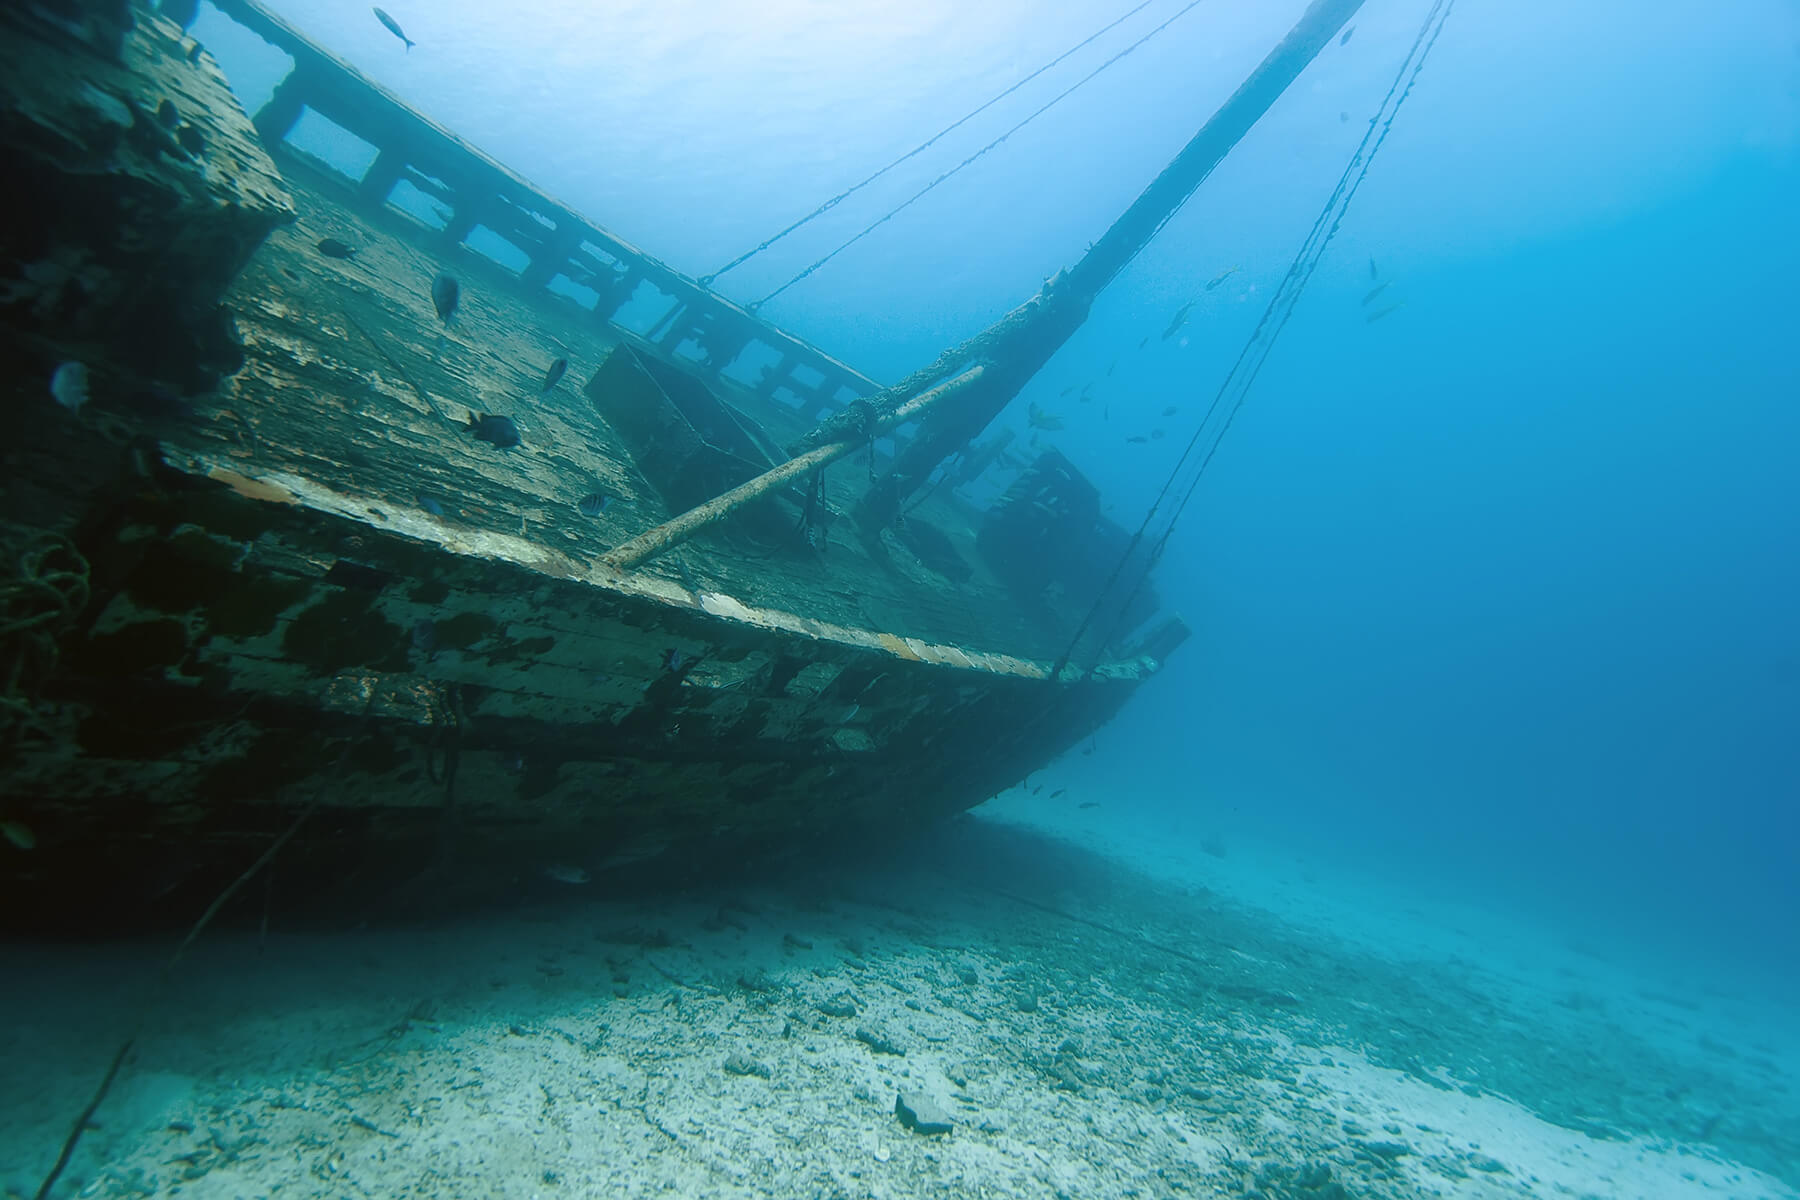 real pirate ship found